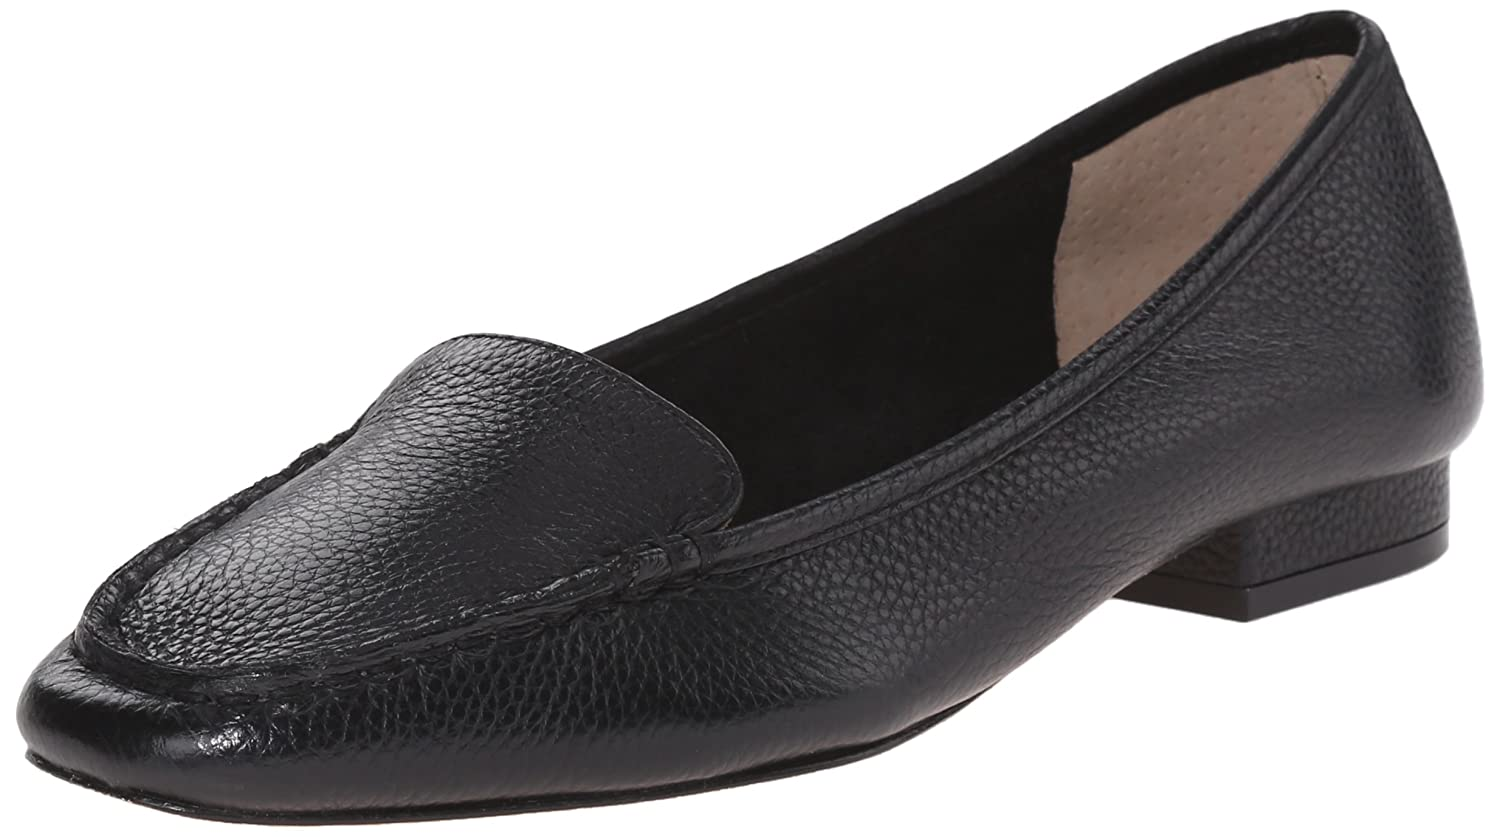 Bettye Muller Women's Valet Slip-On Loafer B01ALNQ7ZW 10 B(M) US|Black